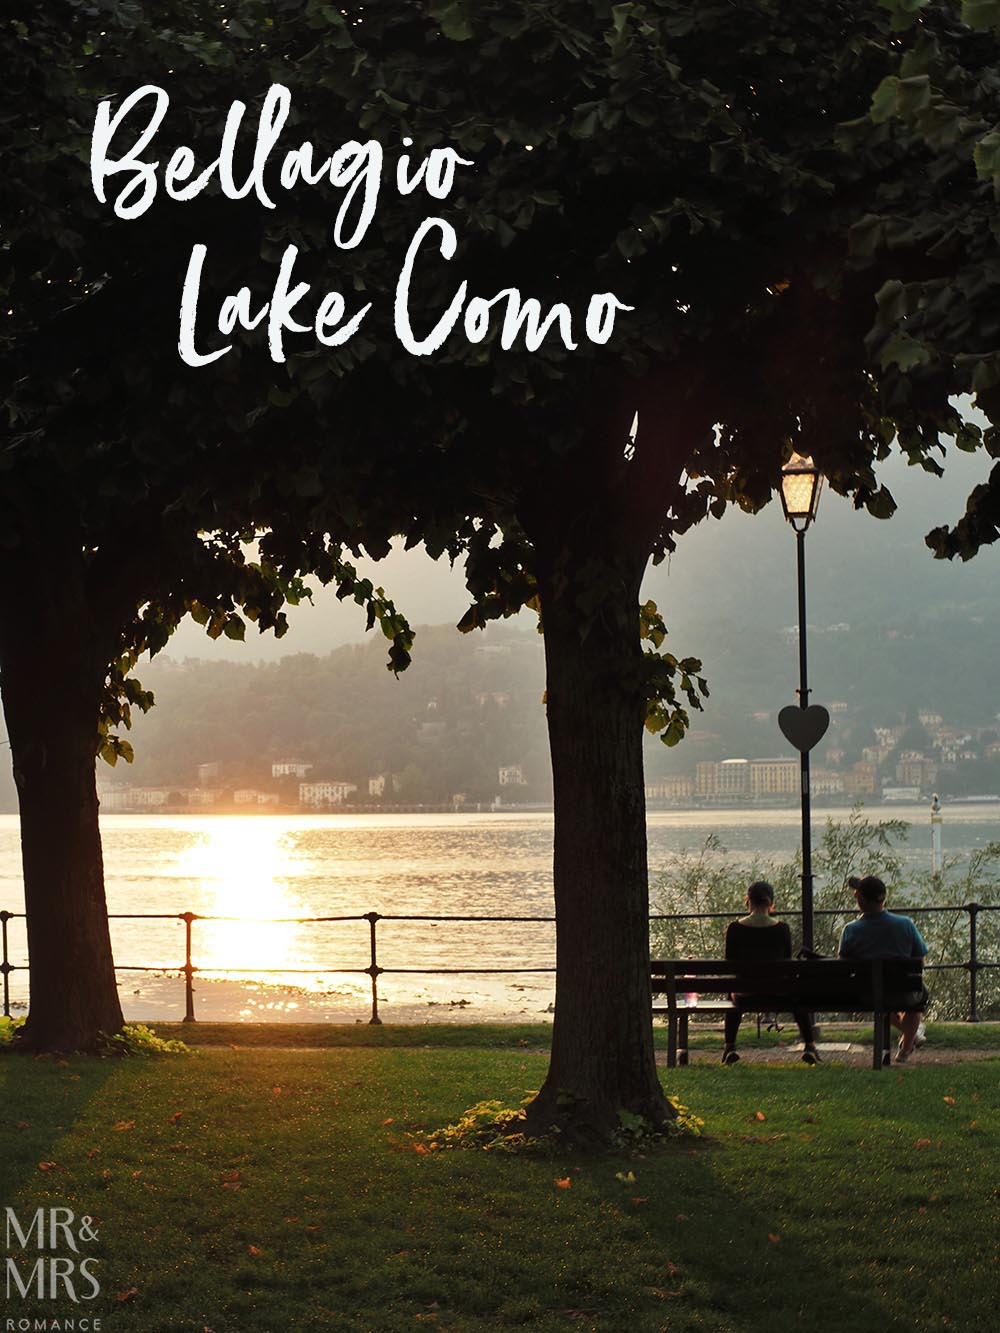 Romantic view of Lake Como from the park at the point of Bellagio - Ultimate Guide to Lake Como, Italy